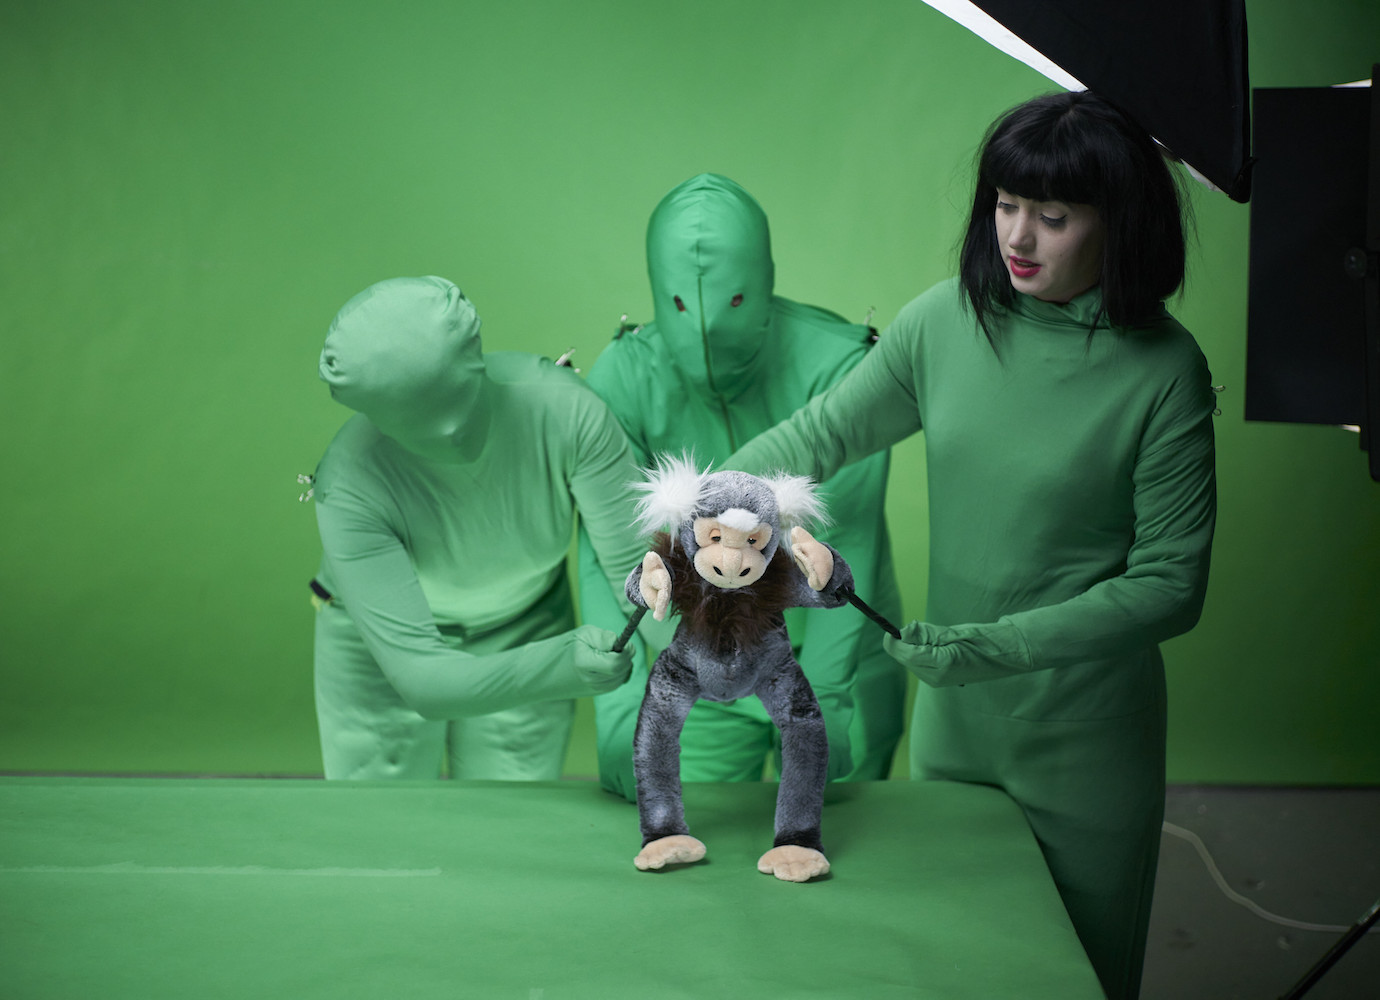 How a charity uses gifts given by abusers to create puppet shows highlighting domestic violence